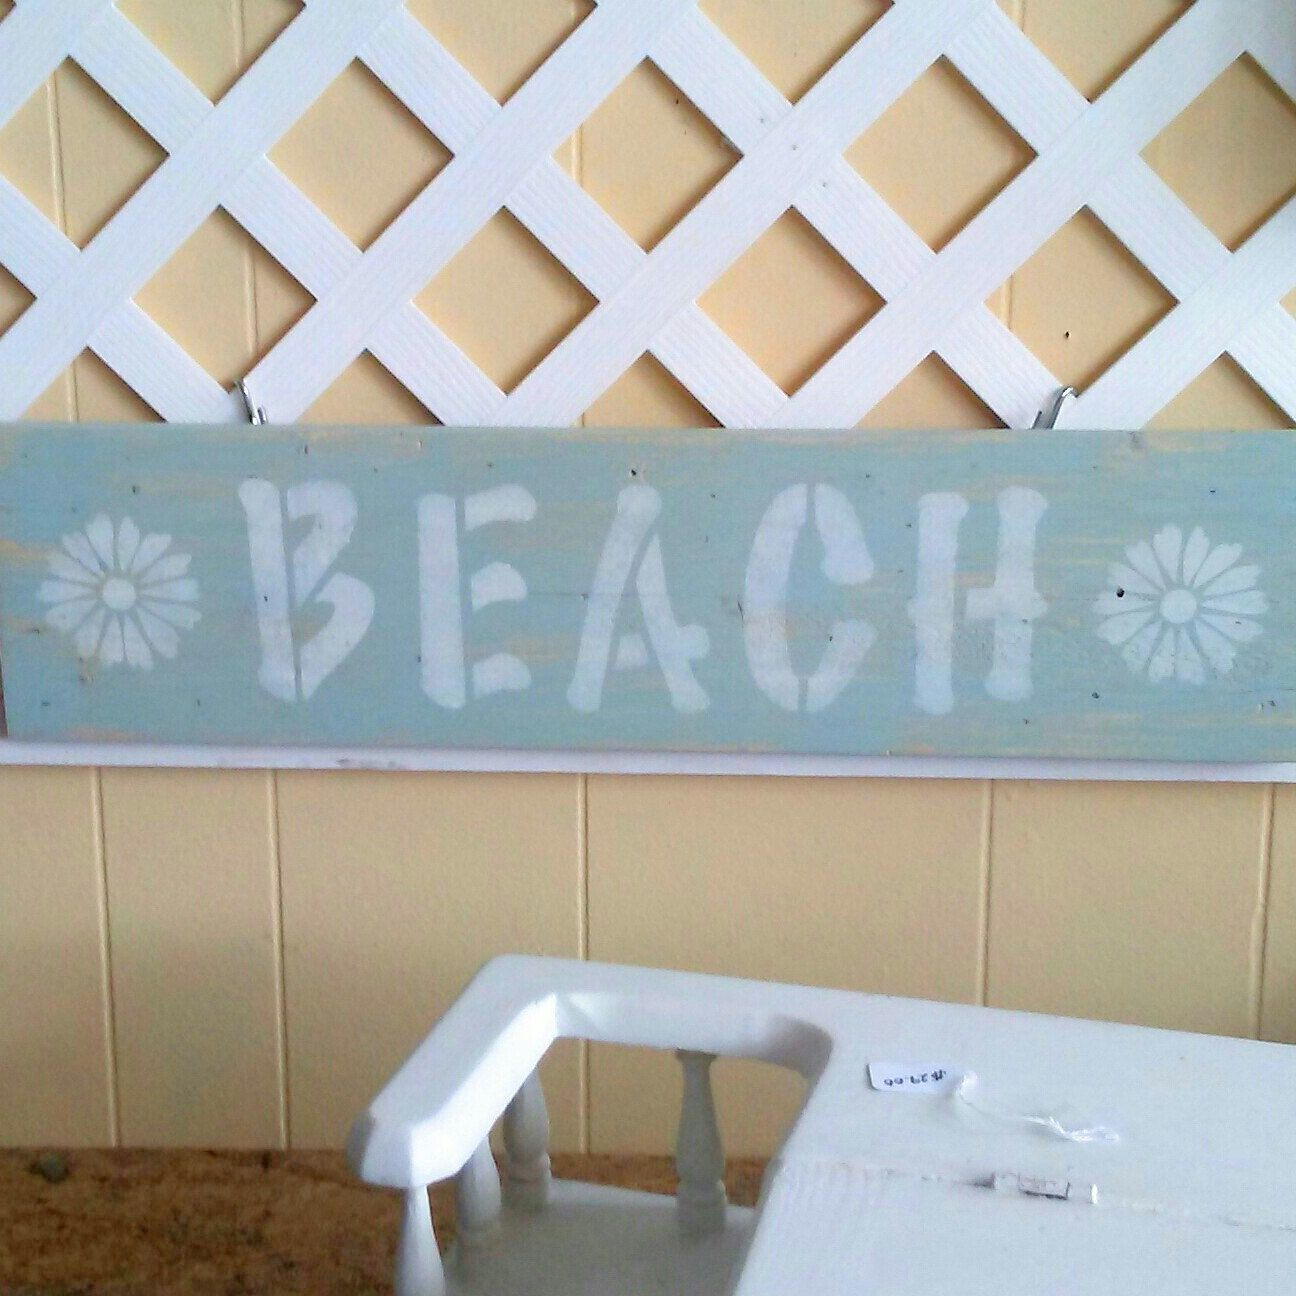 Coastal wood sign painted in beach blue for sale in our online Etsy ...